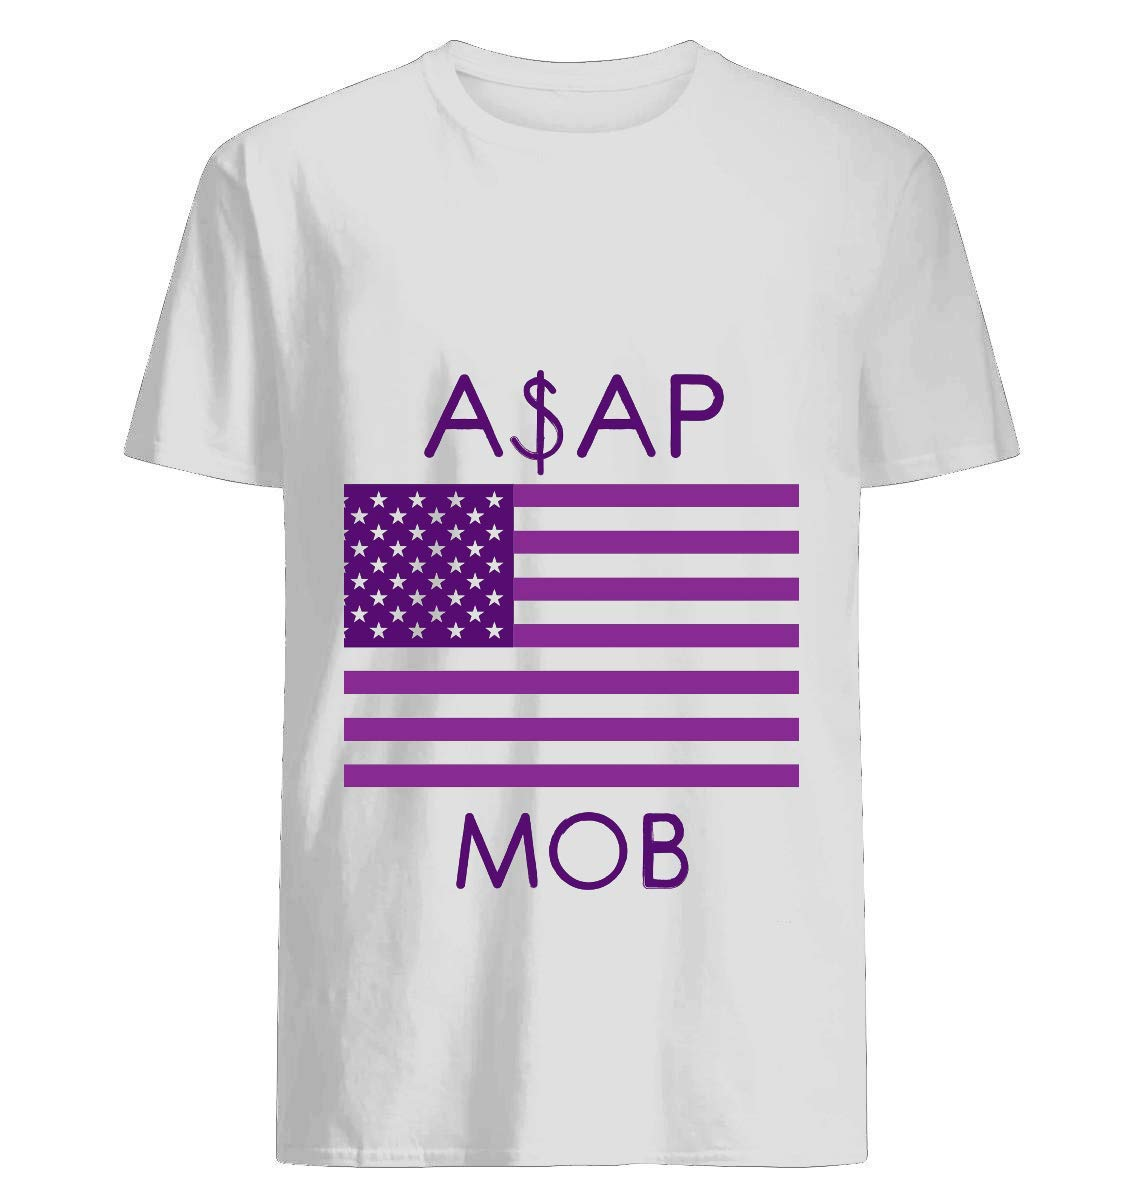 Asap Mob Of America T Shirt For Unisex